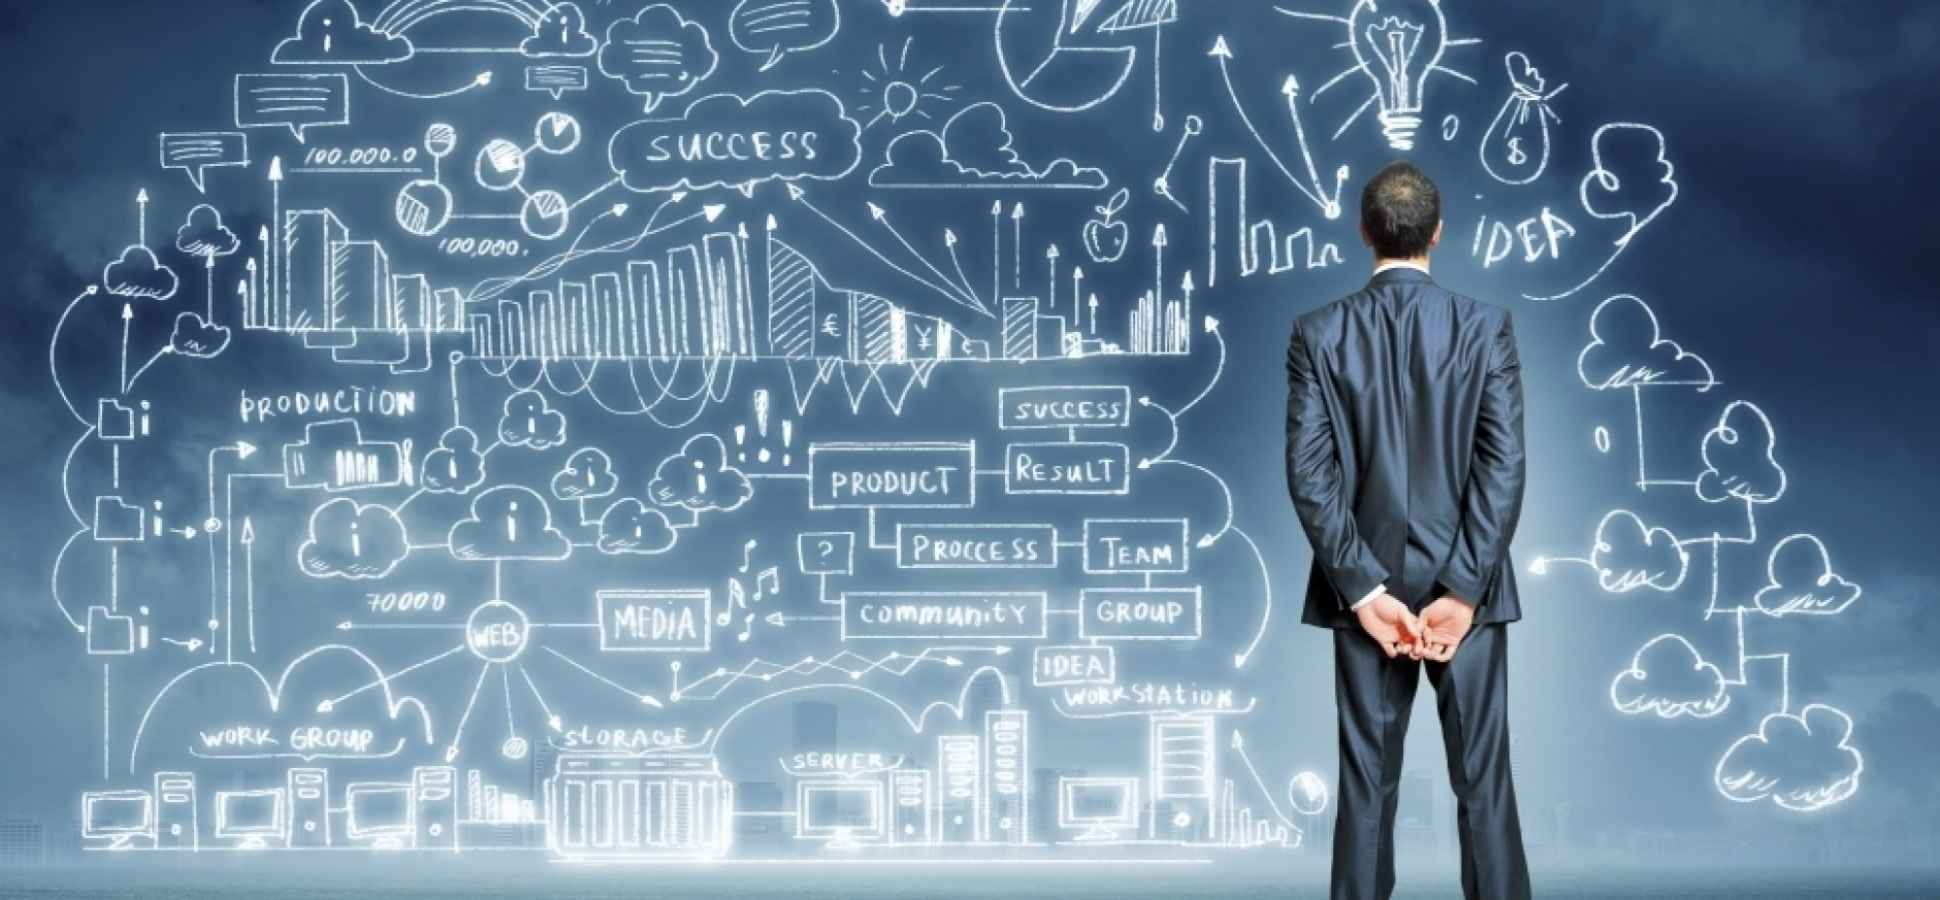 The Top 5 B2B Marketing Trends of 2015